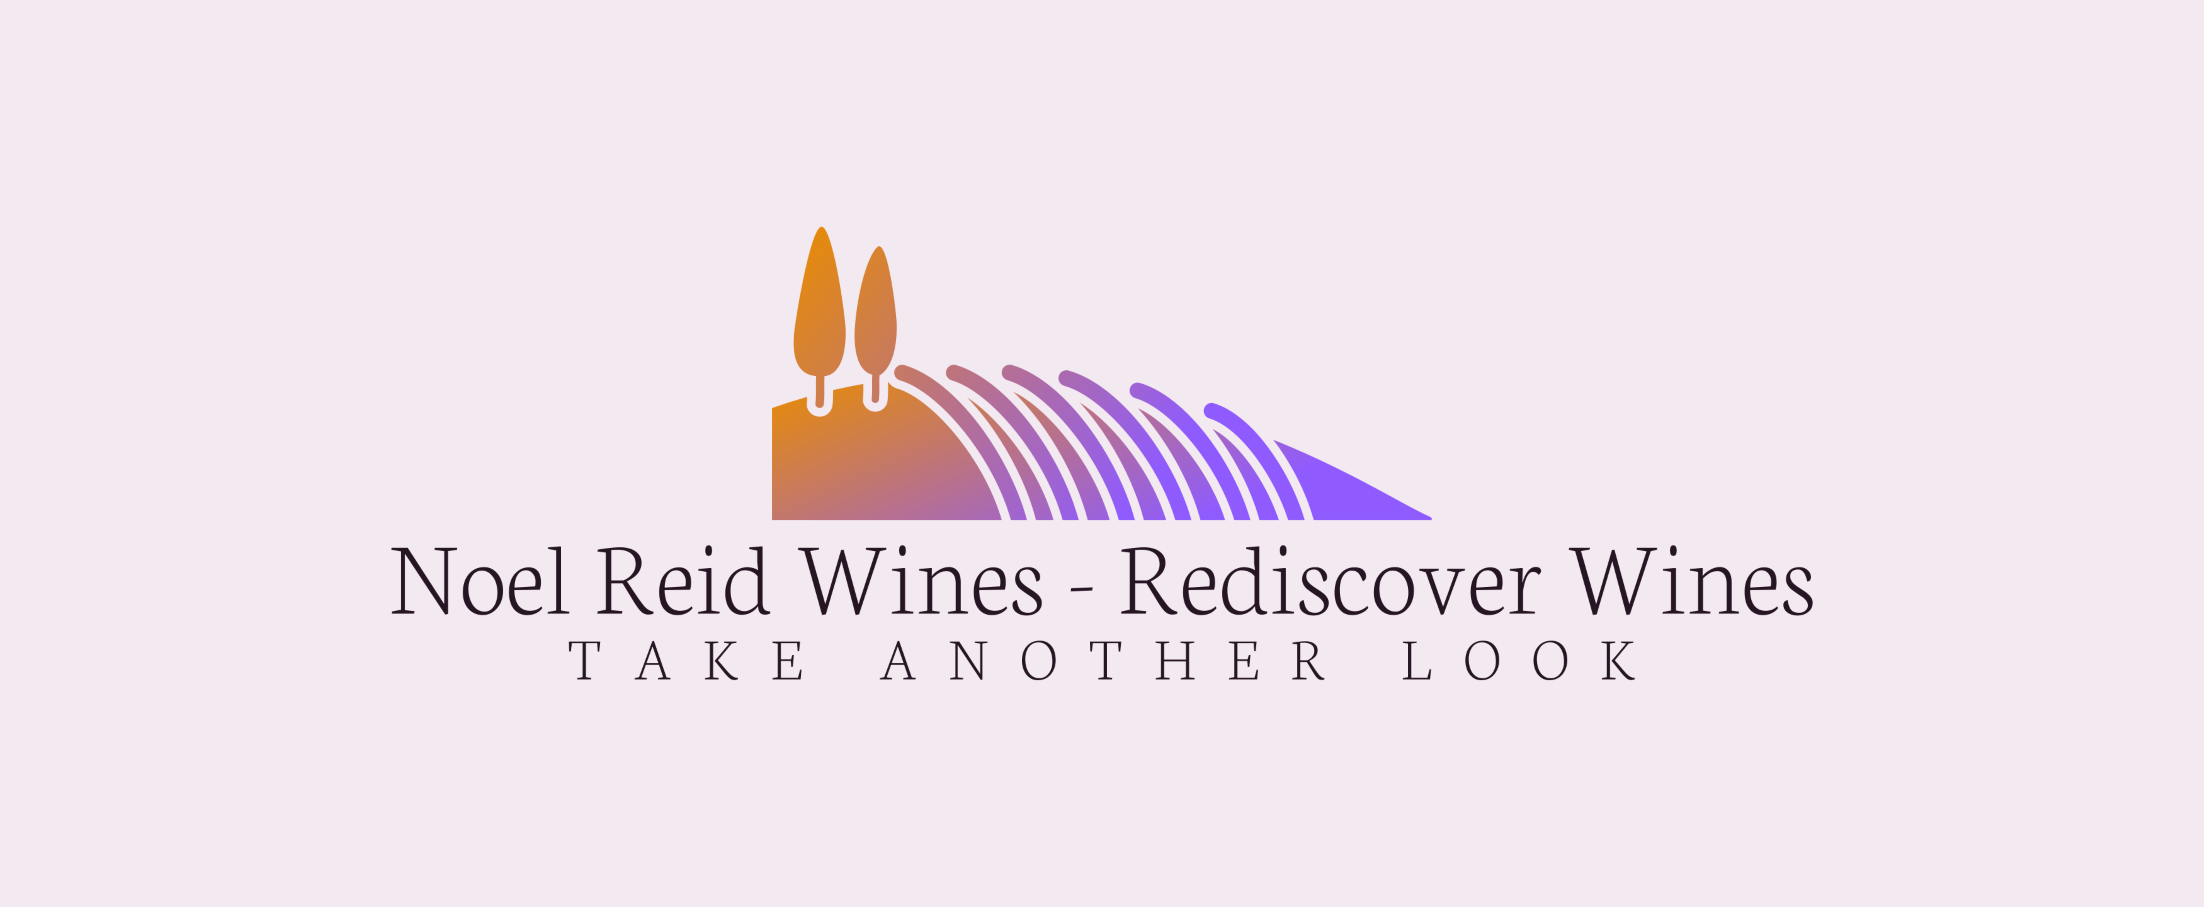 Rediscover Wines